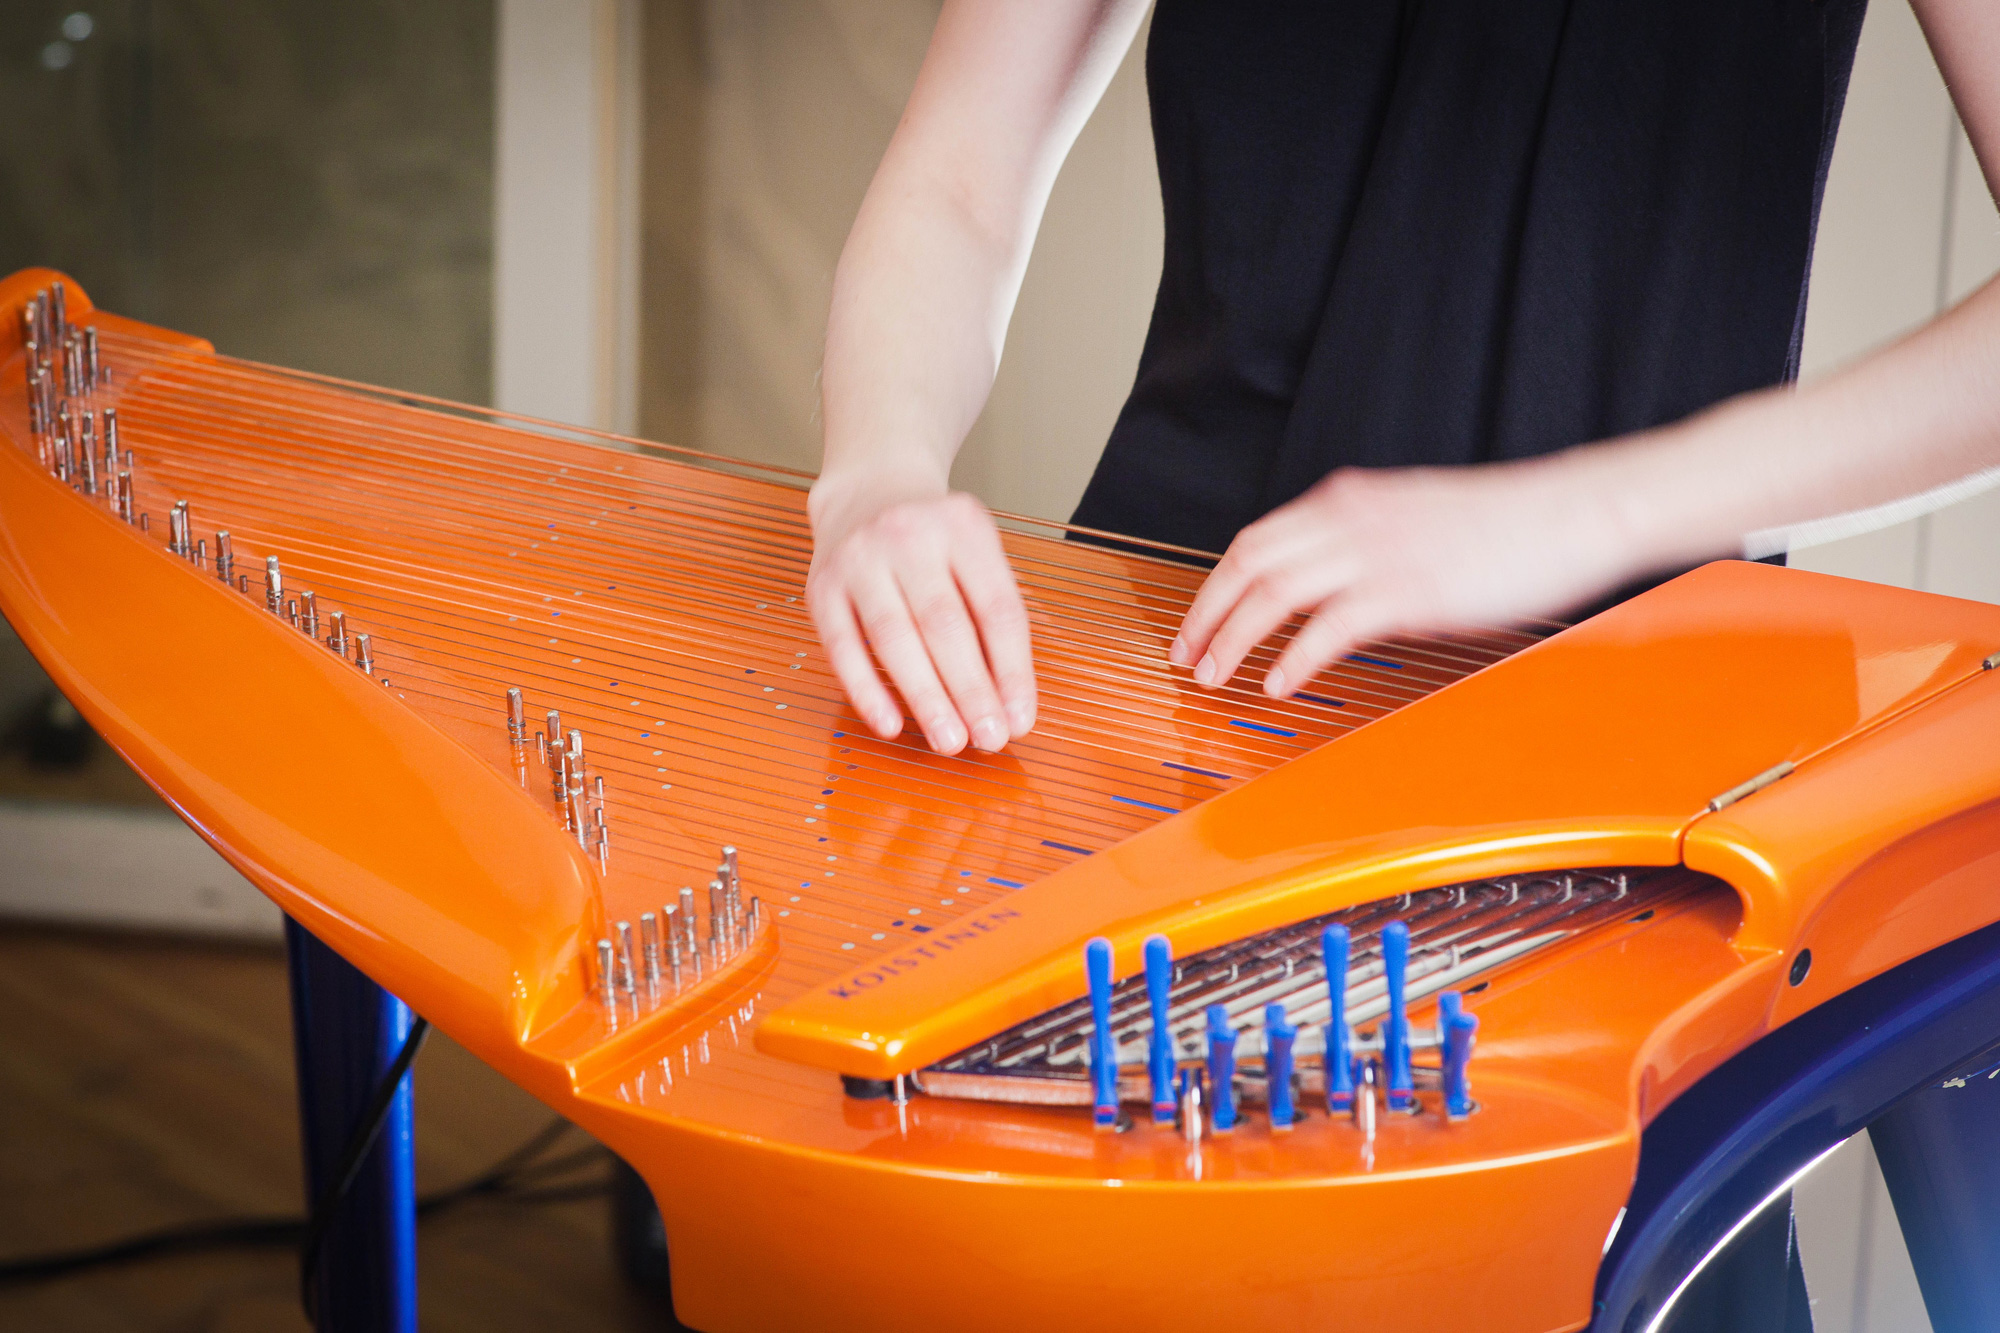 Olgas-hands-on-electric-kantele copy